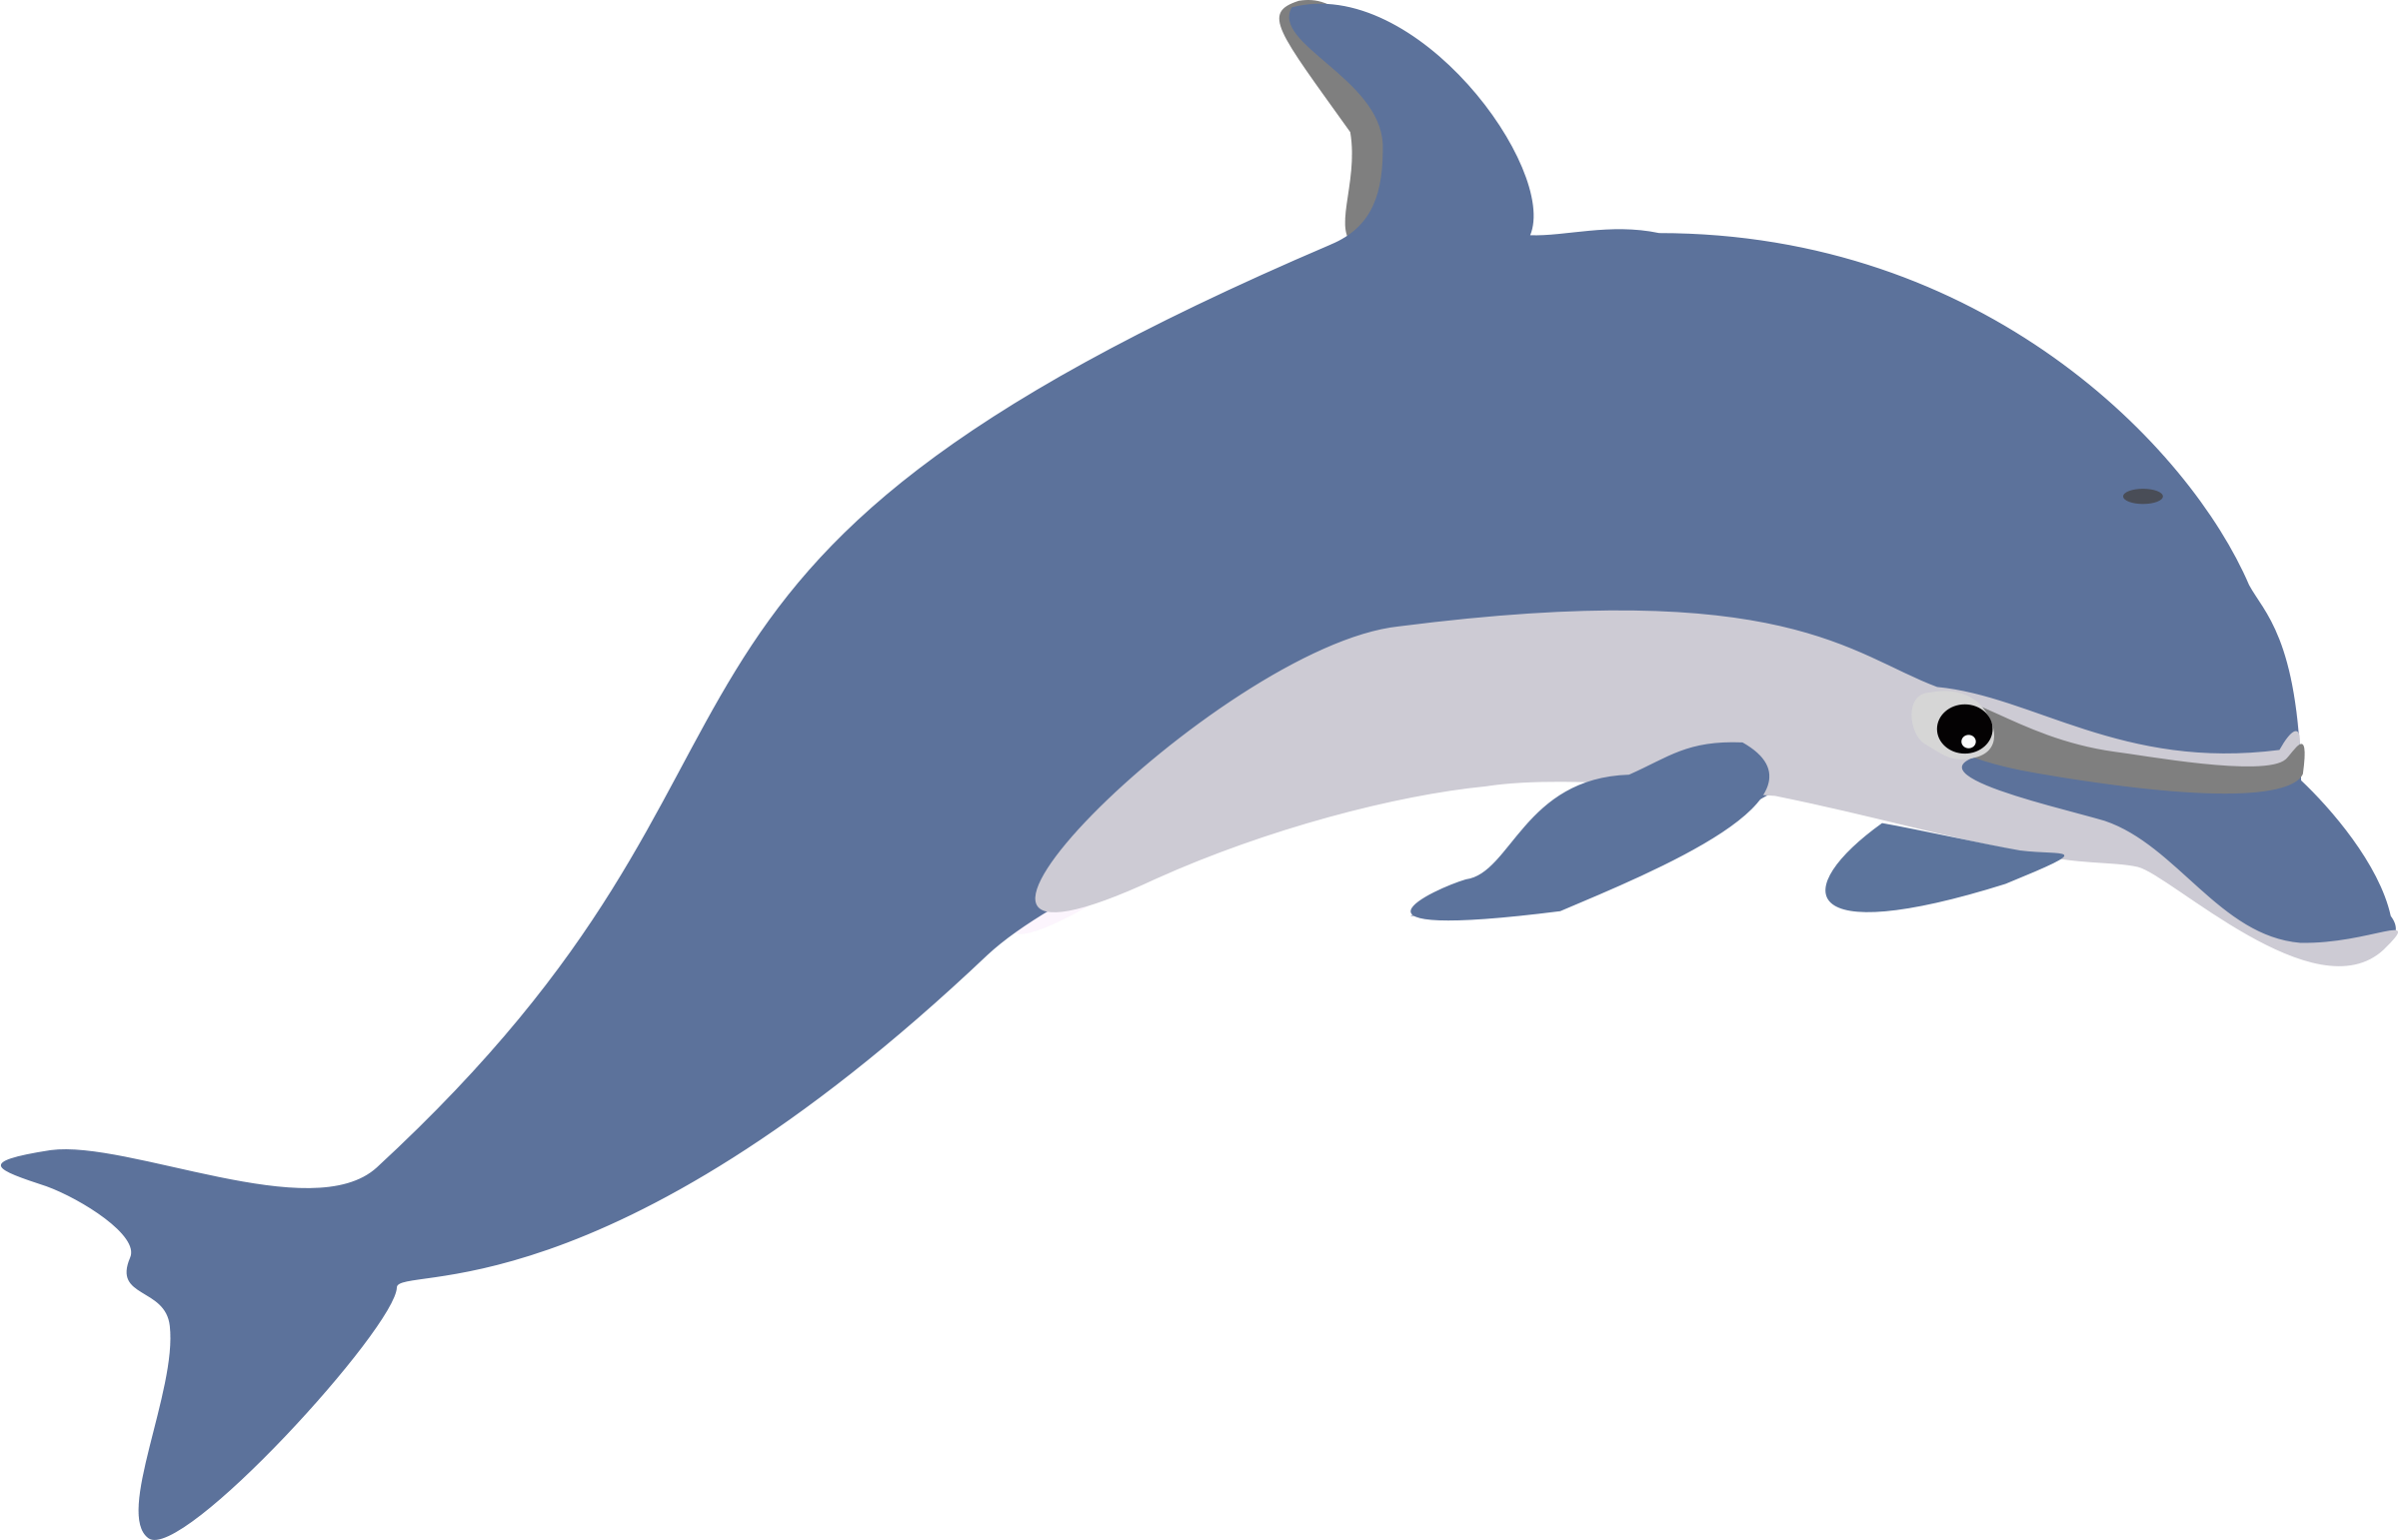 Dolphin clipart real svg library Dolphin clipart real - ClipartFest svg library